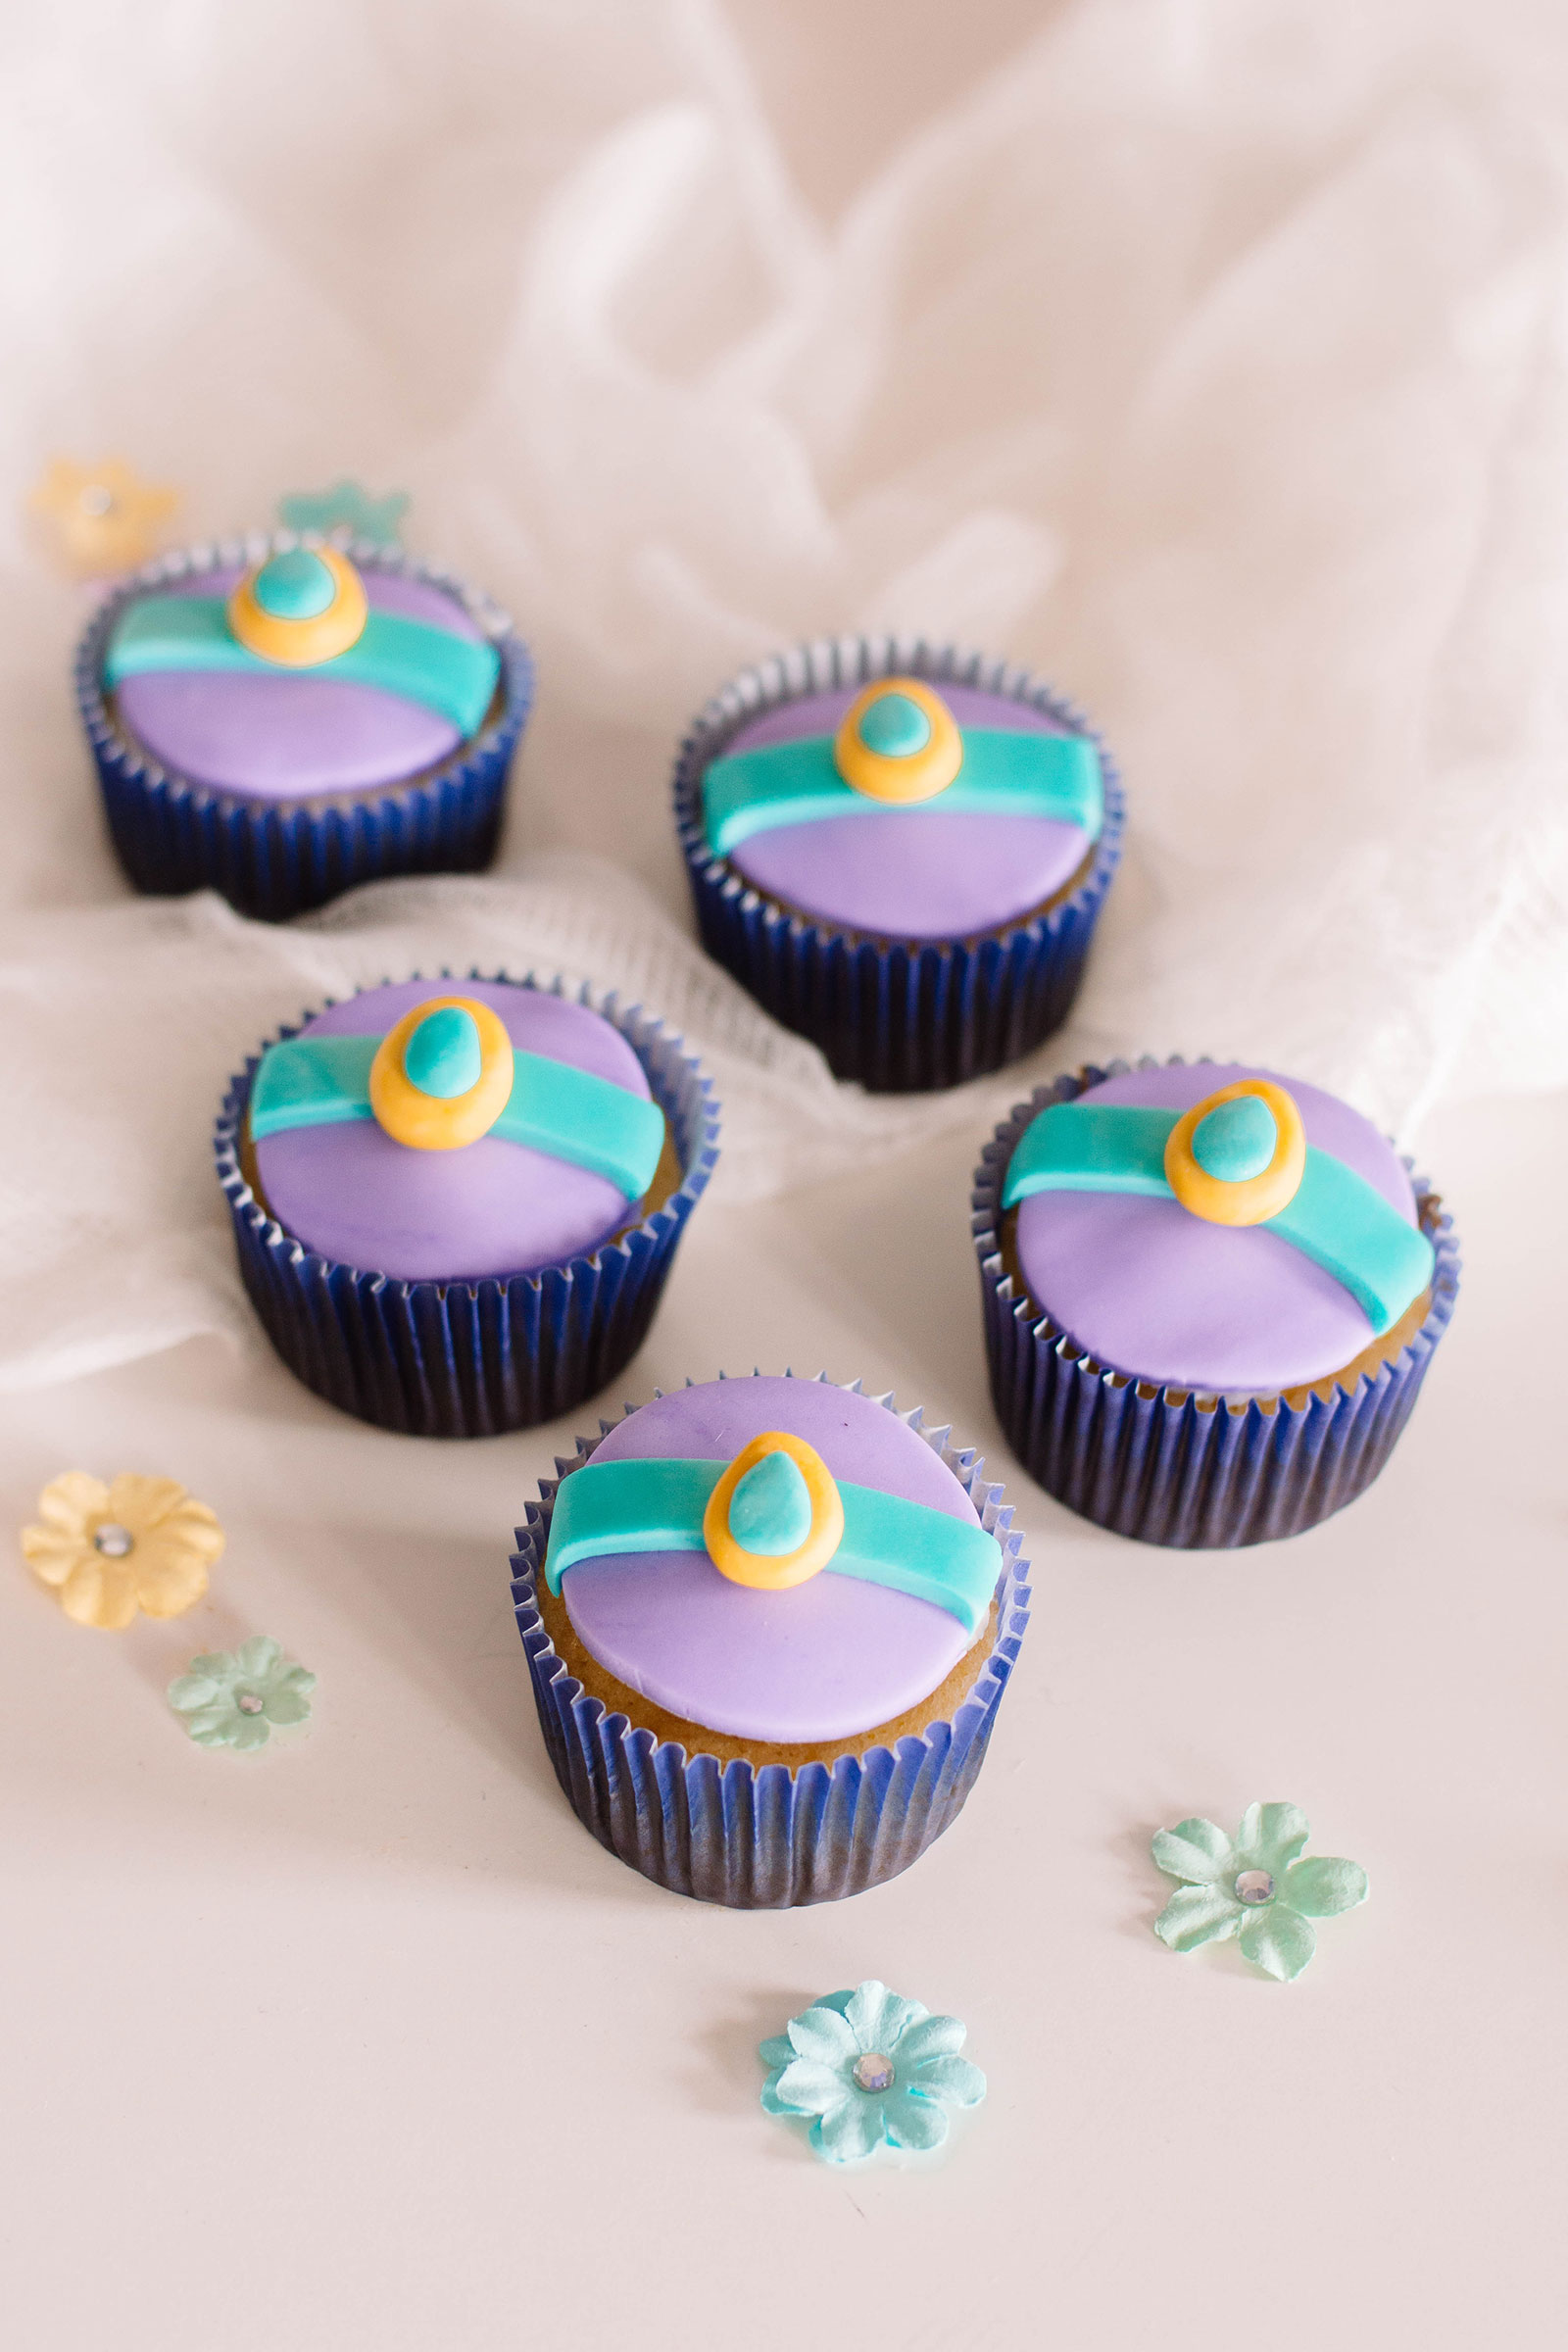 These Aladdin-inspired cupcakes are so cute thanks to the fondant Princess Jasmine Cupcake Toppers. Adorable! #cupcakeideas